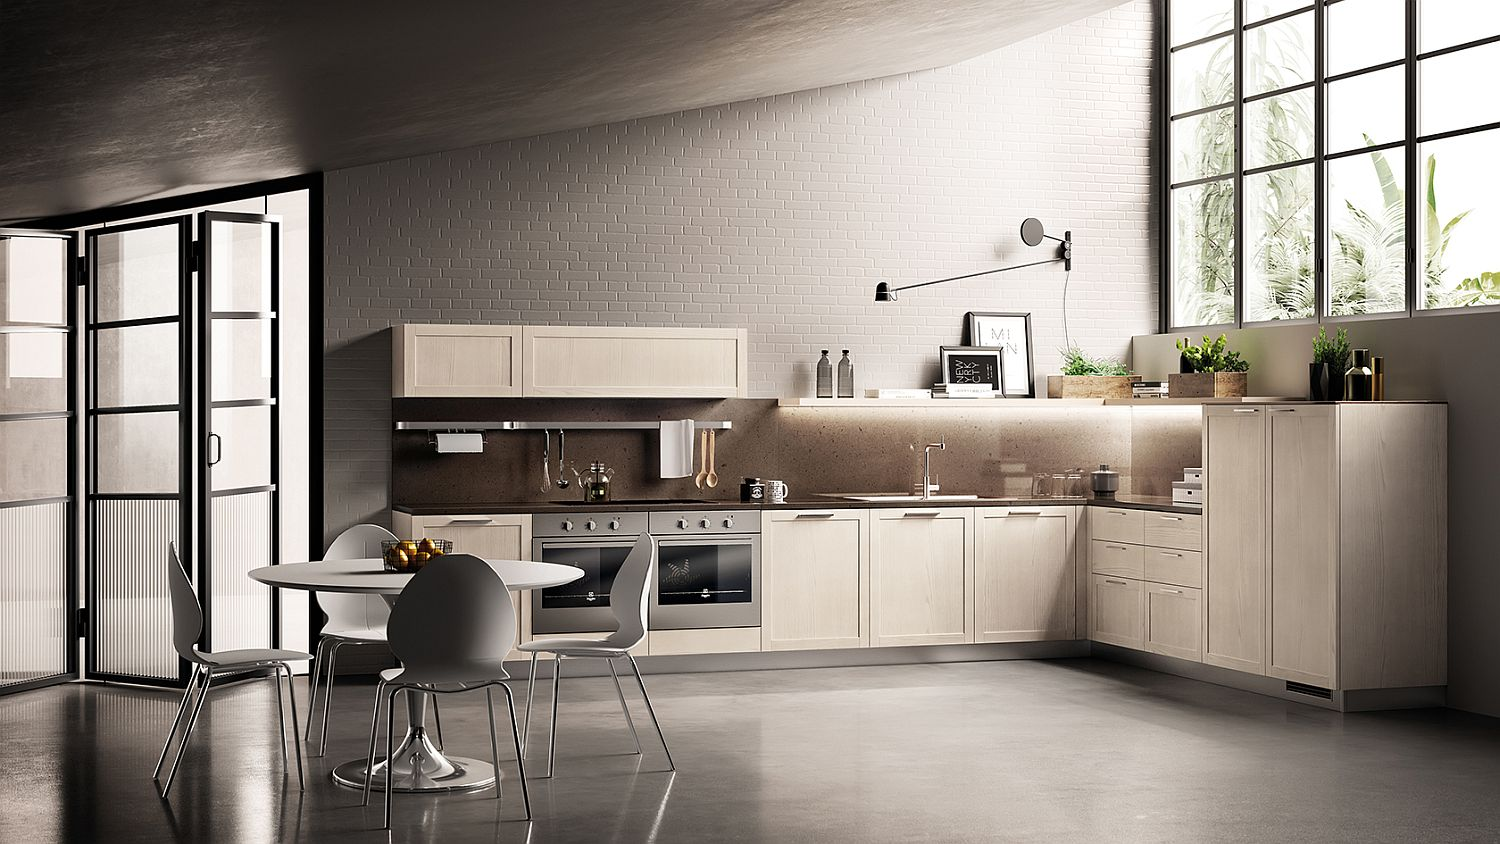 Classic Contemporary Kitchen carattere: classical-contemporary kitchen blends sophistication